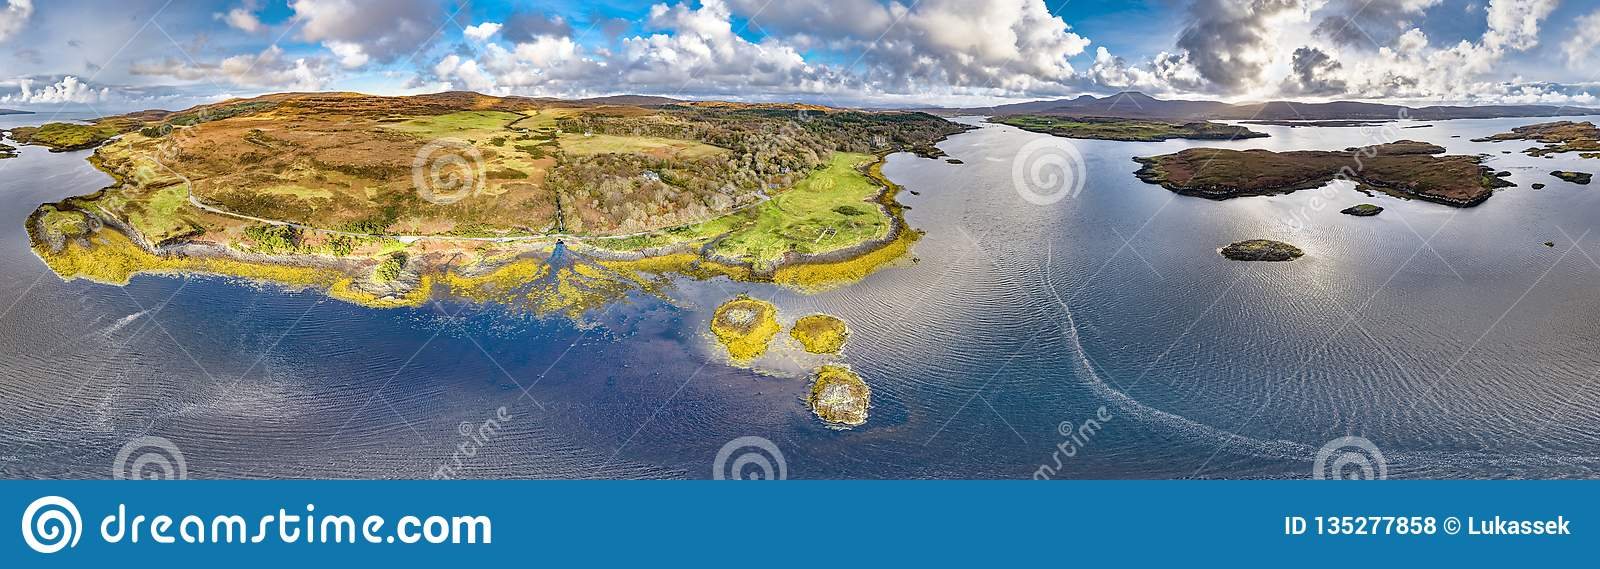 Aerial autumn view of Dunvegan Castle, Isle of Skye